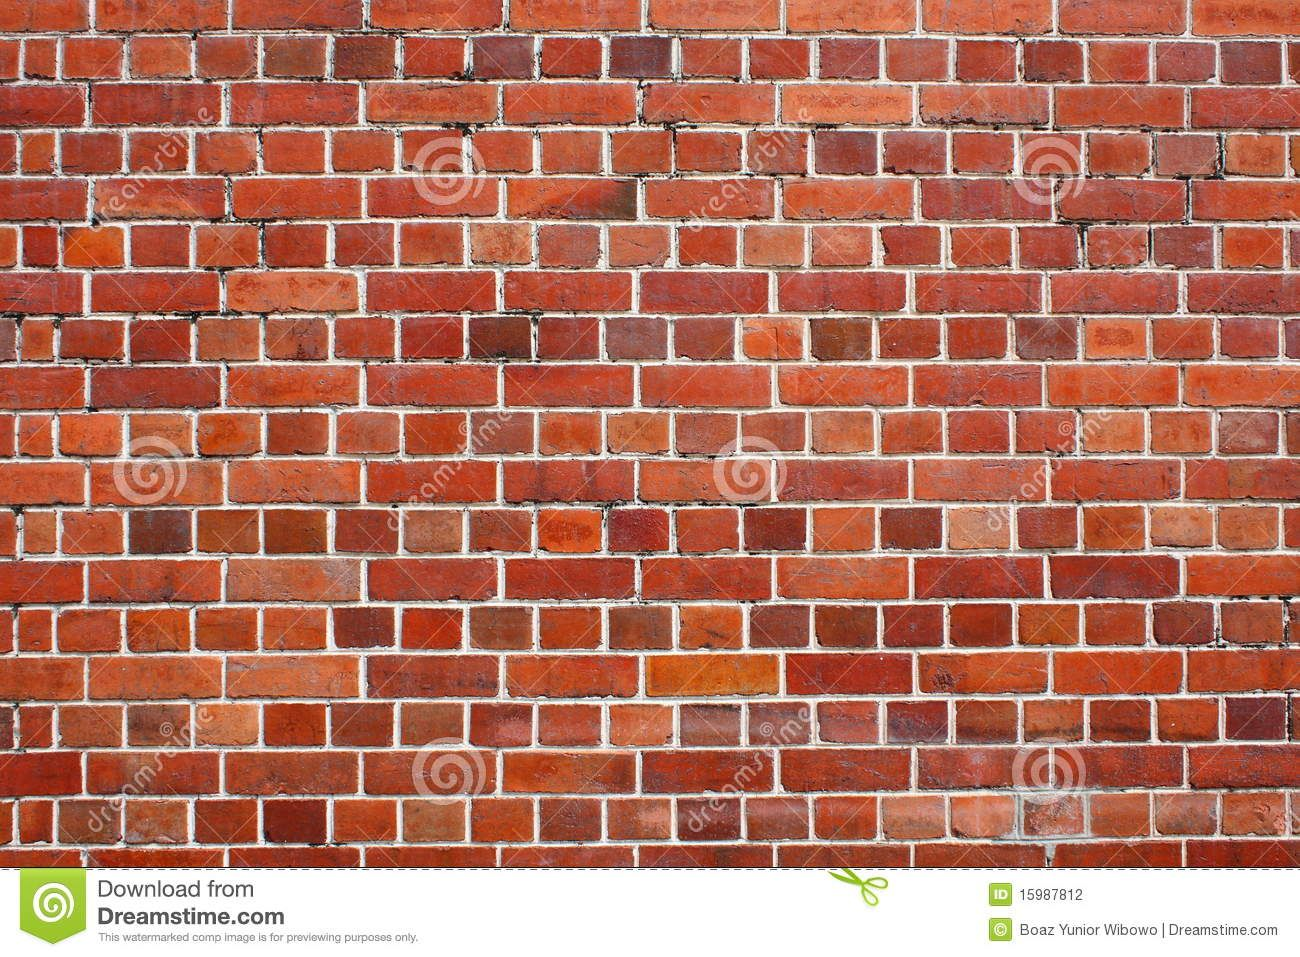 Red Brick Wall Download From Over 63 Million High Quality Stock Photos Images Vectors Sign Up For Free Today Image Red Brick Walls Brick Wall Red Bricks